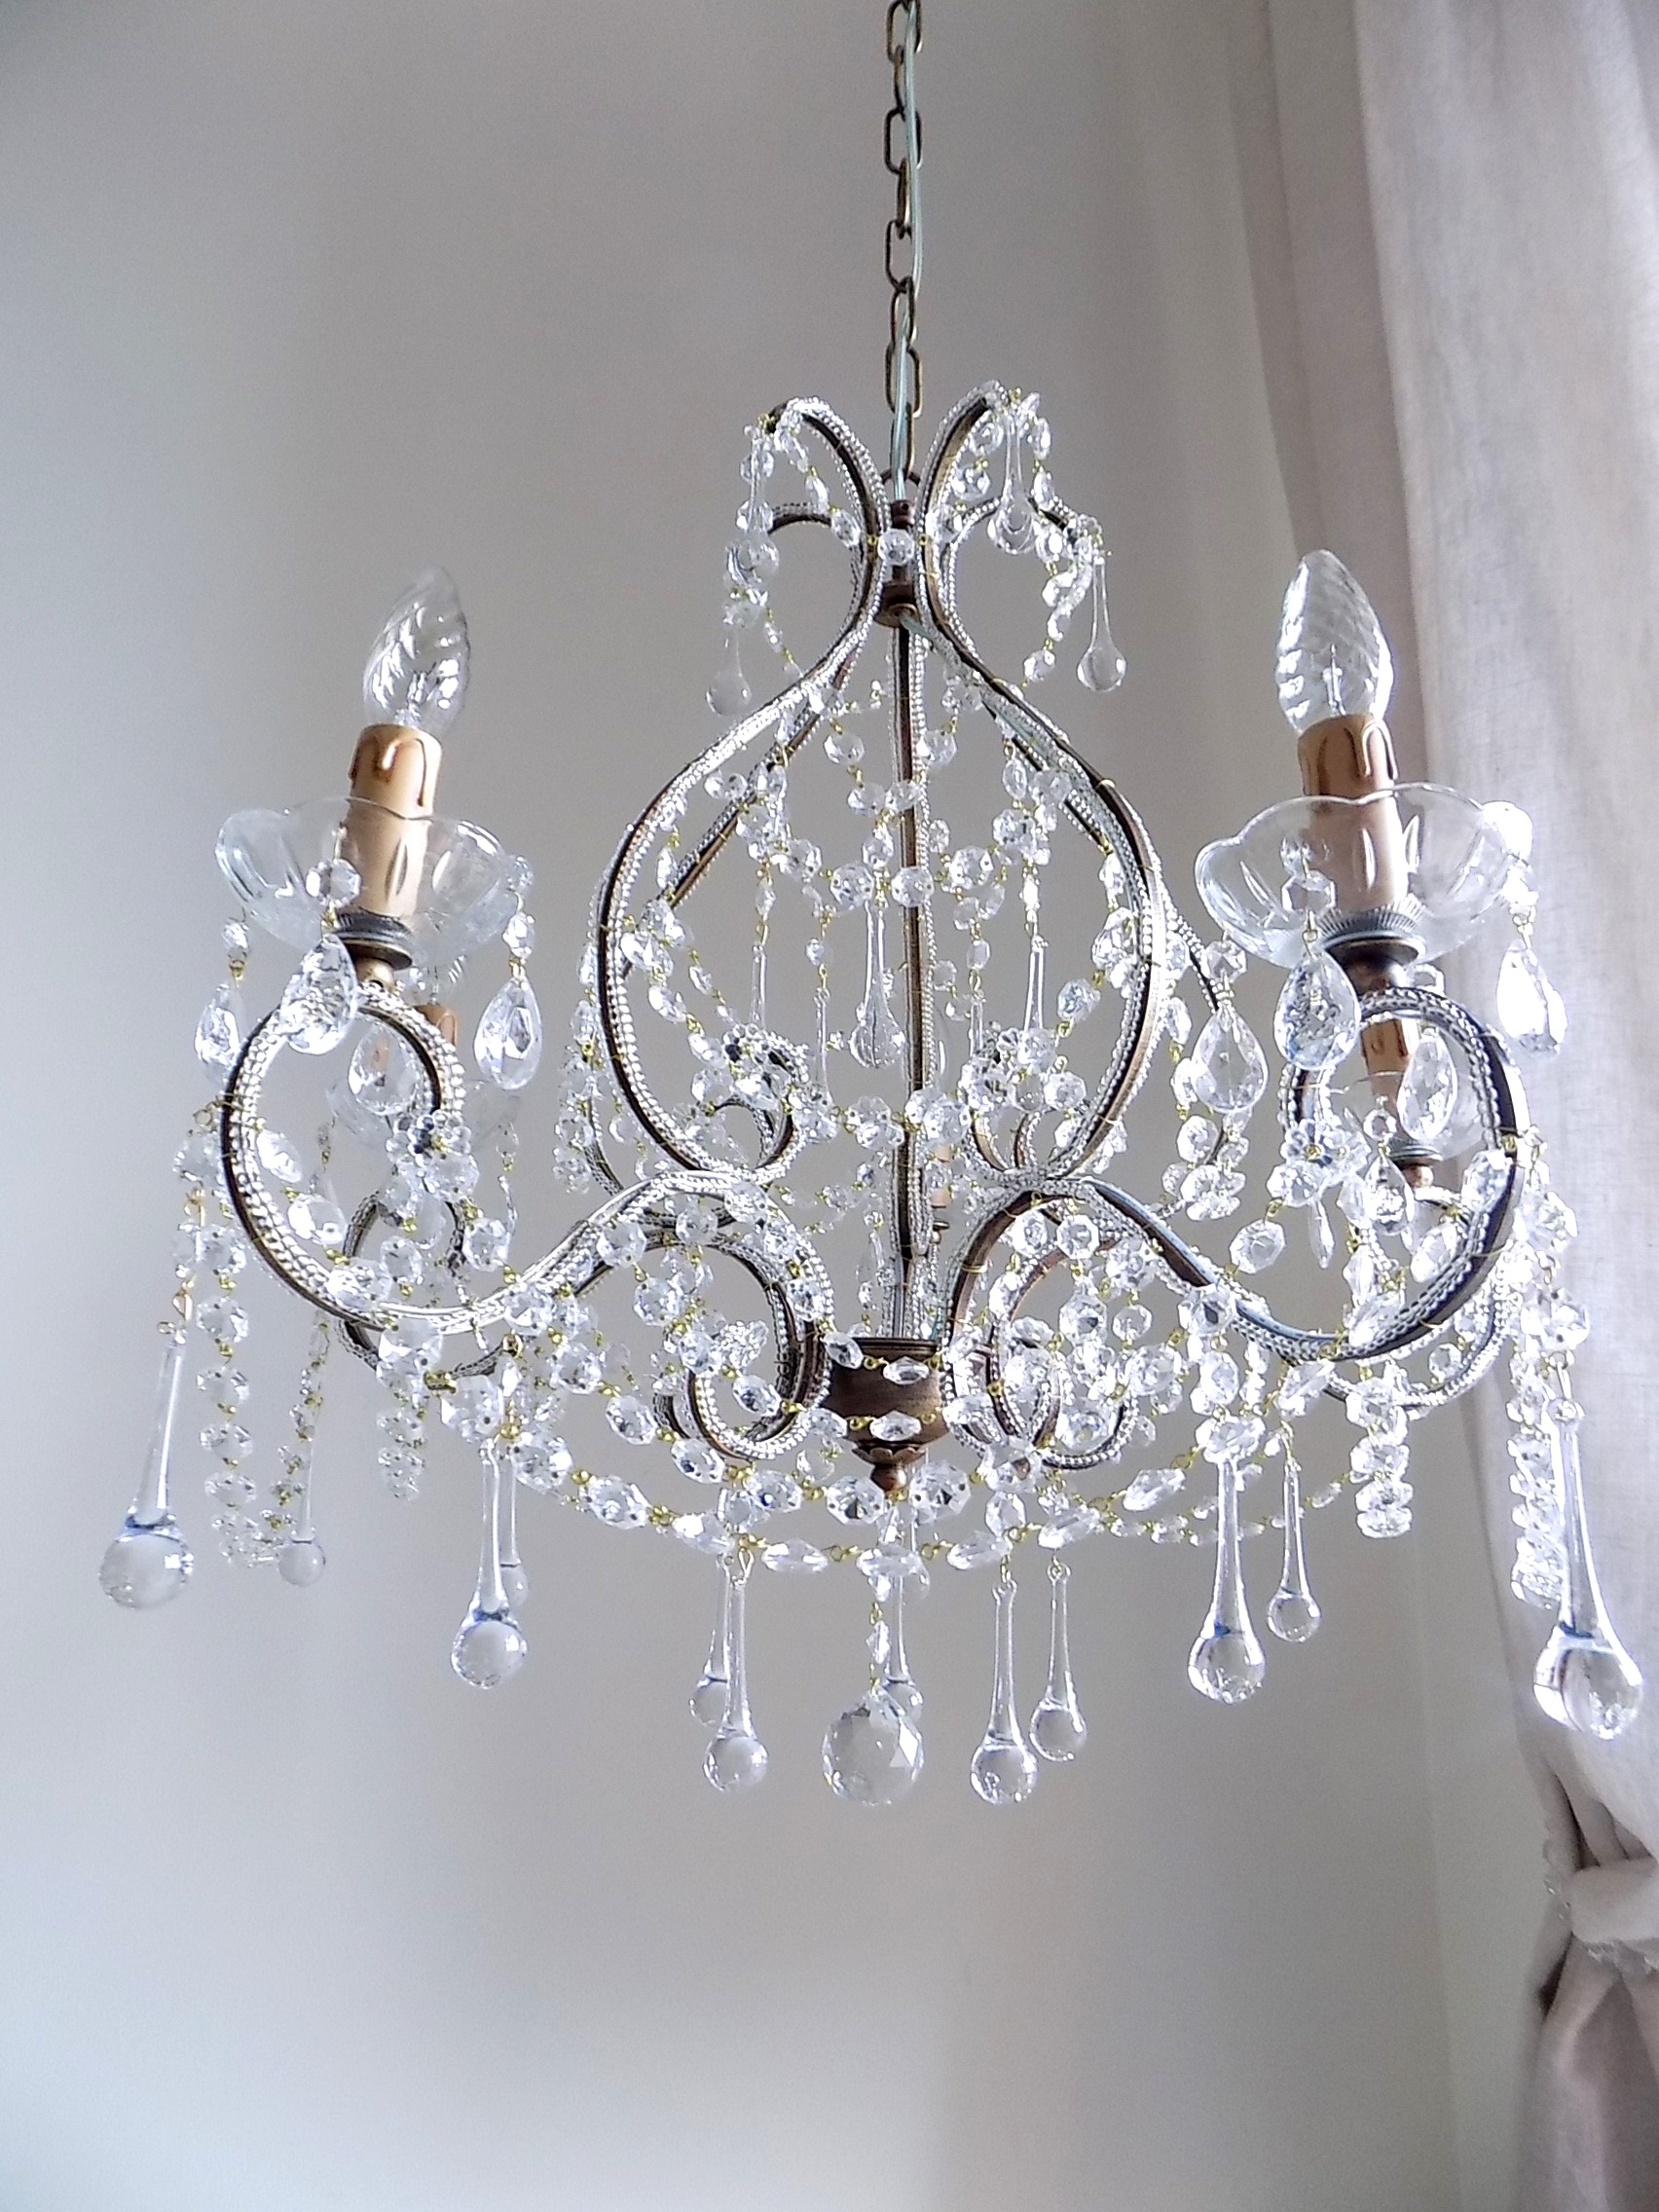 ARIANNA clear crystal chandelier 5 arms